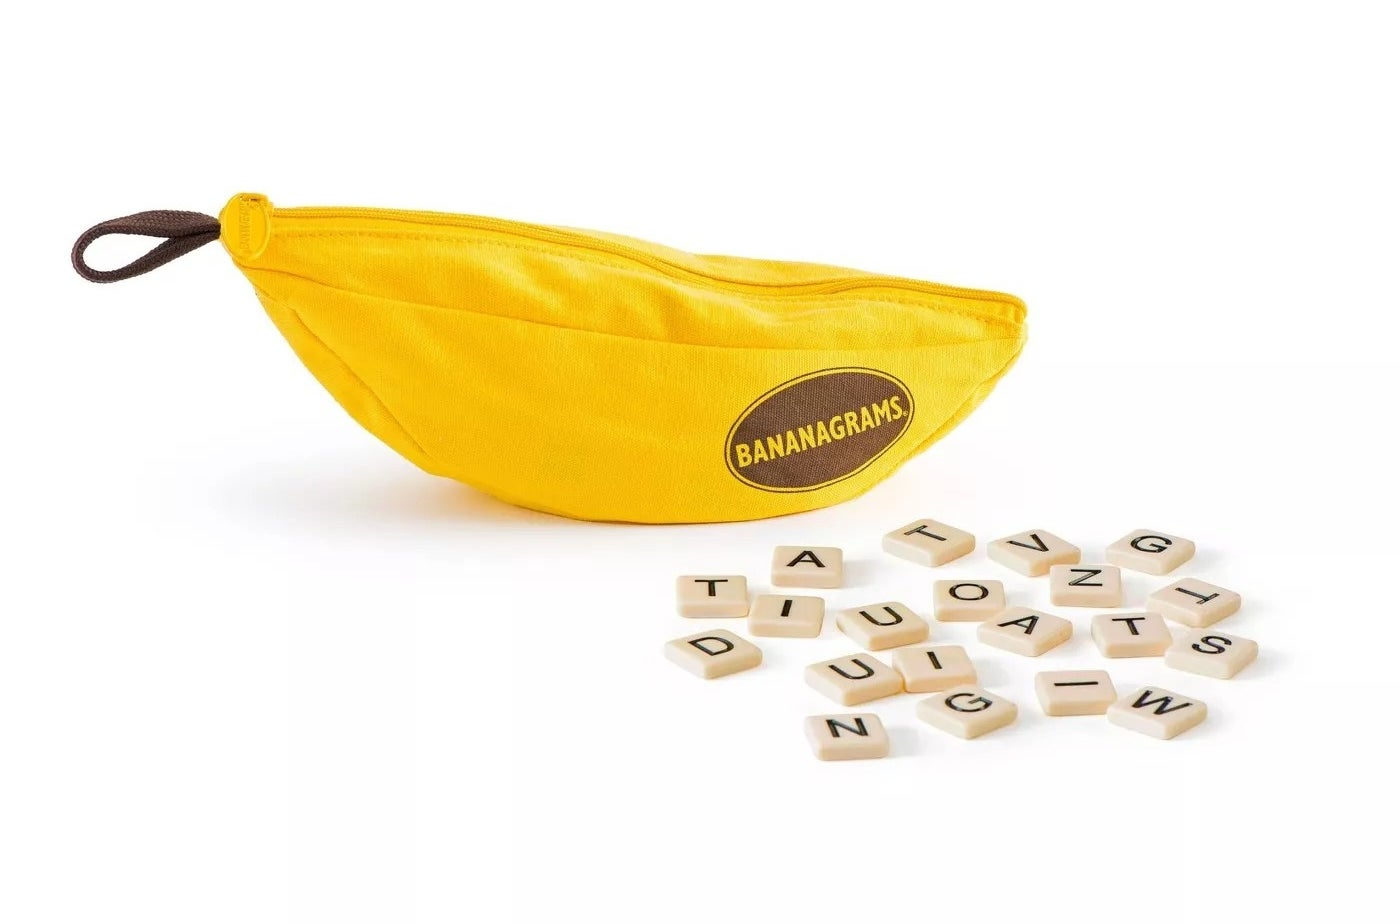 The Bananagrams tiles and pouch